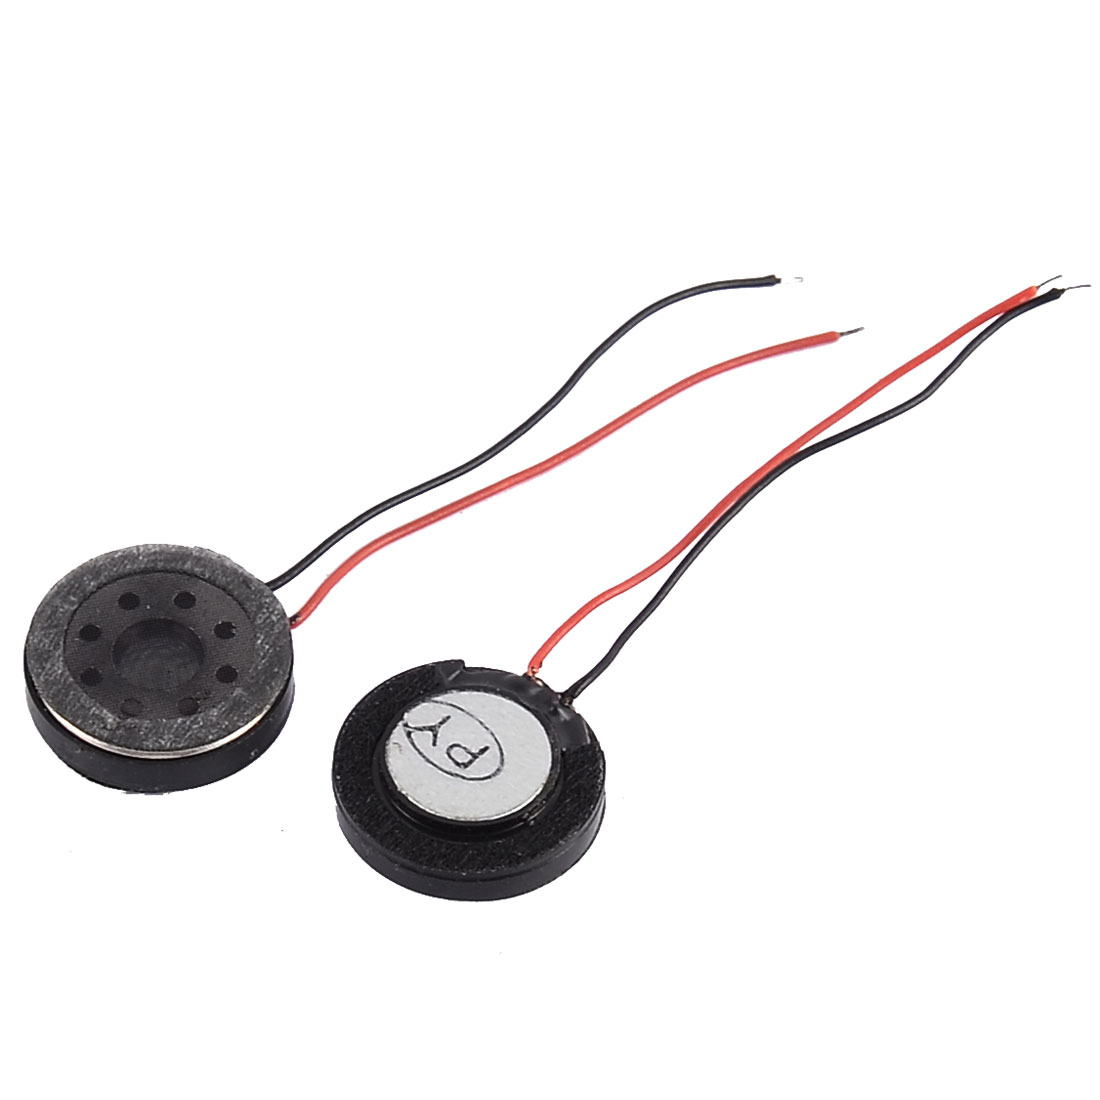 1Watt 8 Ohm 15mm Dia 2-Wired Round Mini Magnet MP3 MP4 Phone Speaker Loudspeaker 2 Pcs